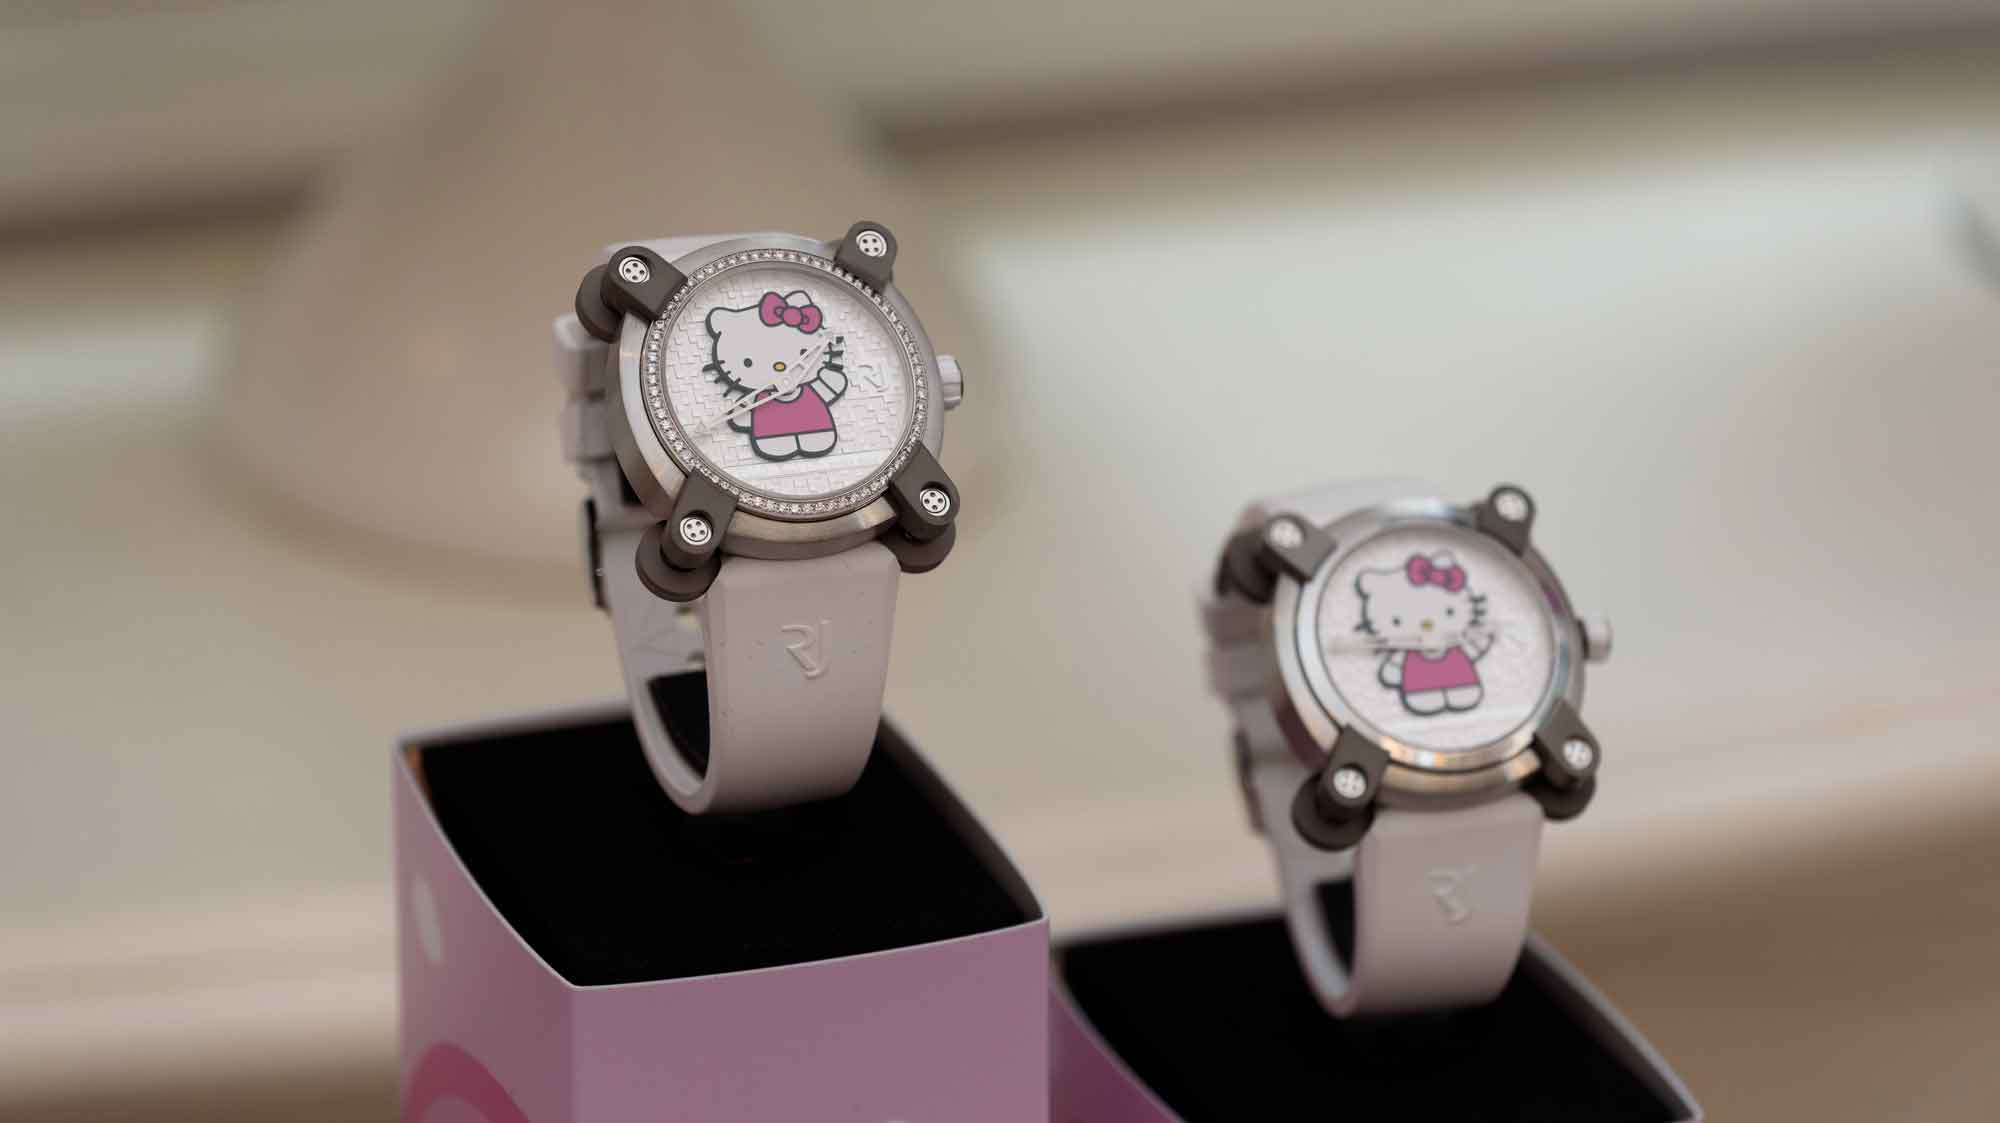 RJ X Hello Kitty with ethereum on BitDials